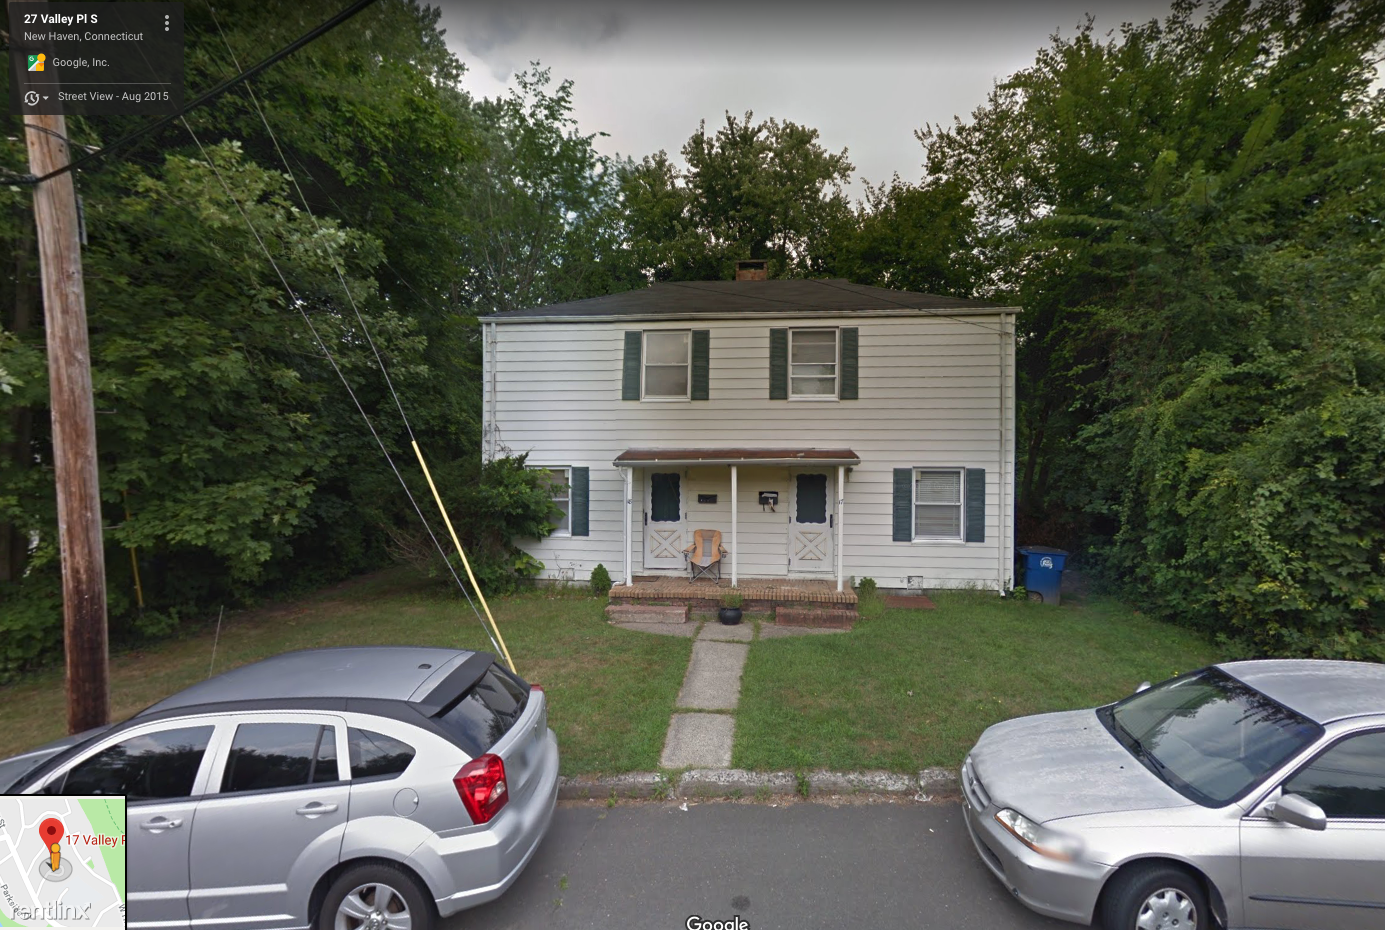 17 Valley Pl S